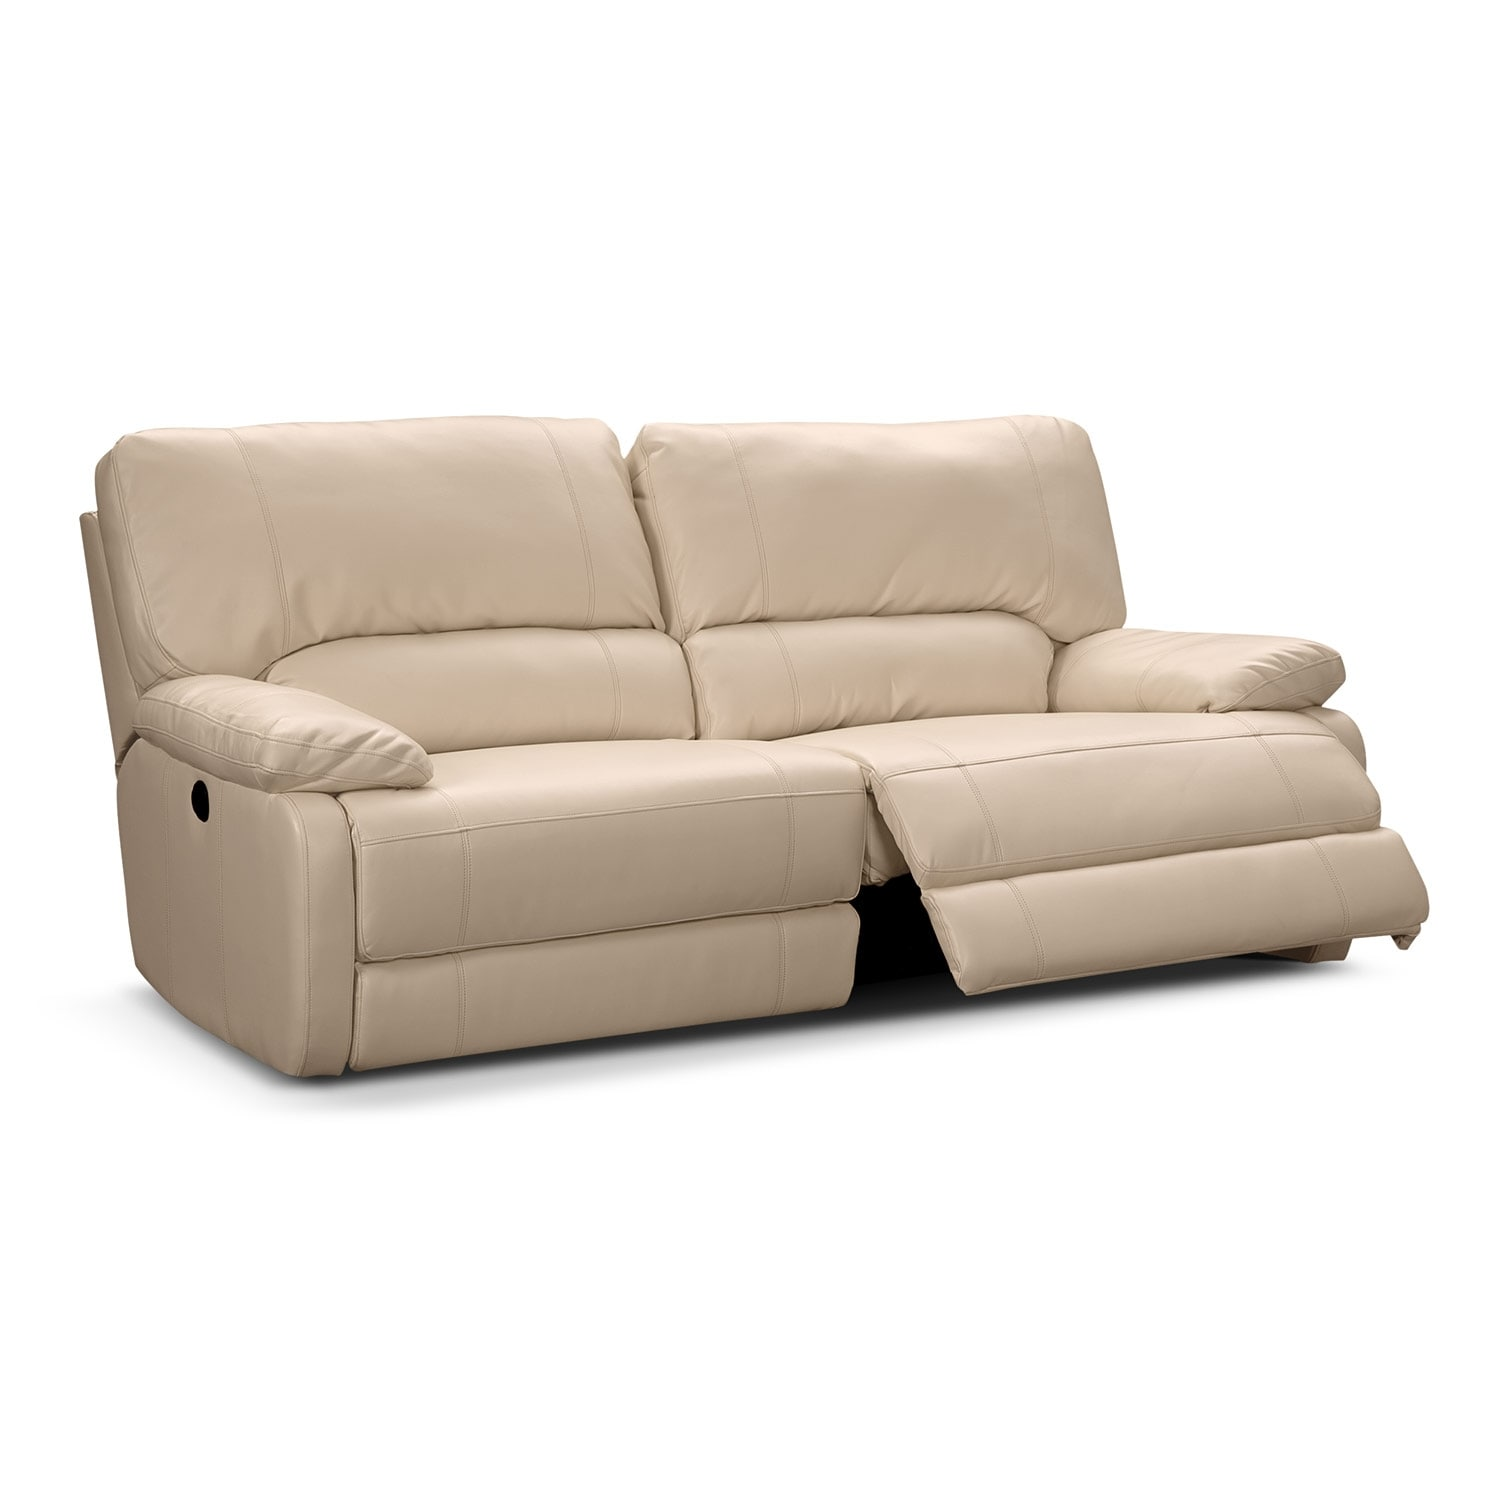 Coronado leather power reclining sofa value city furniture Power loveseat recliner